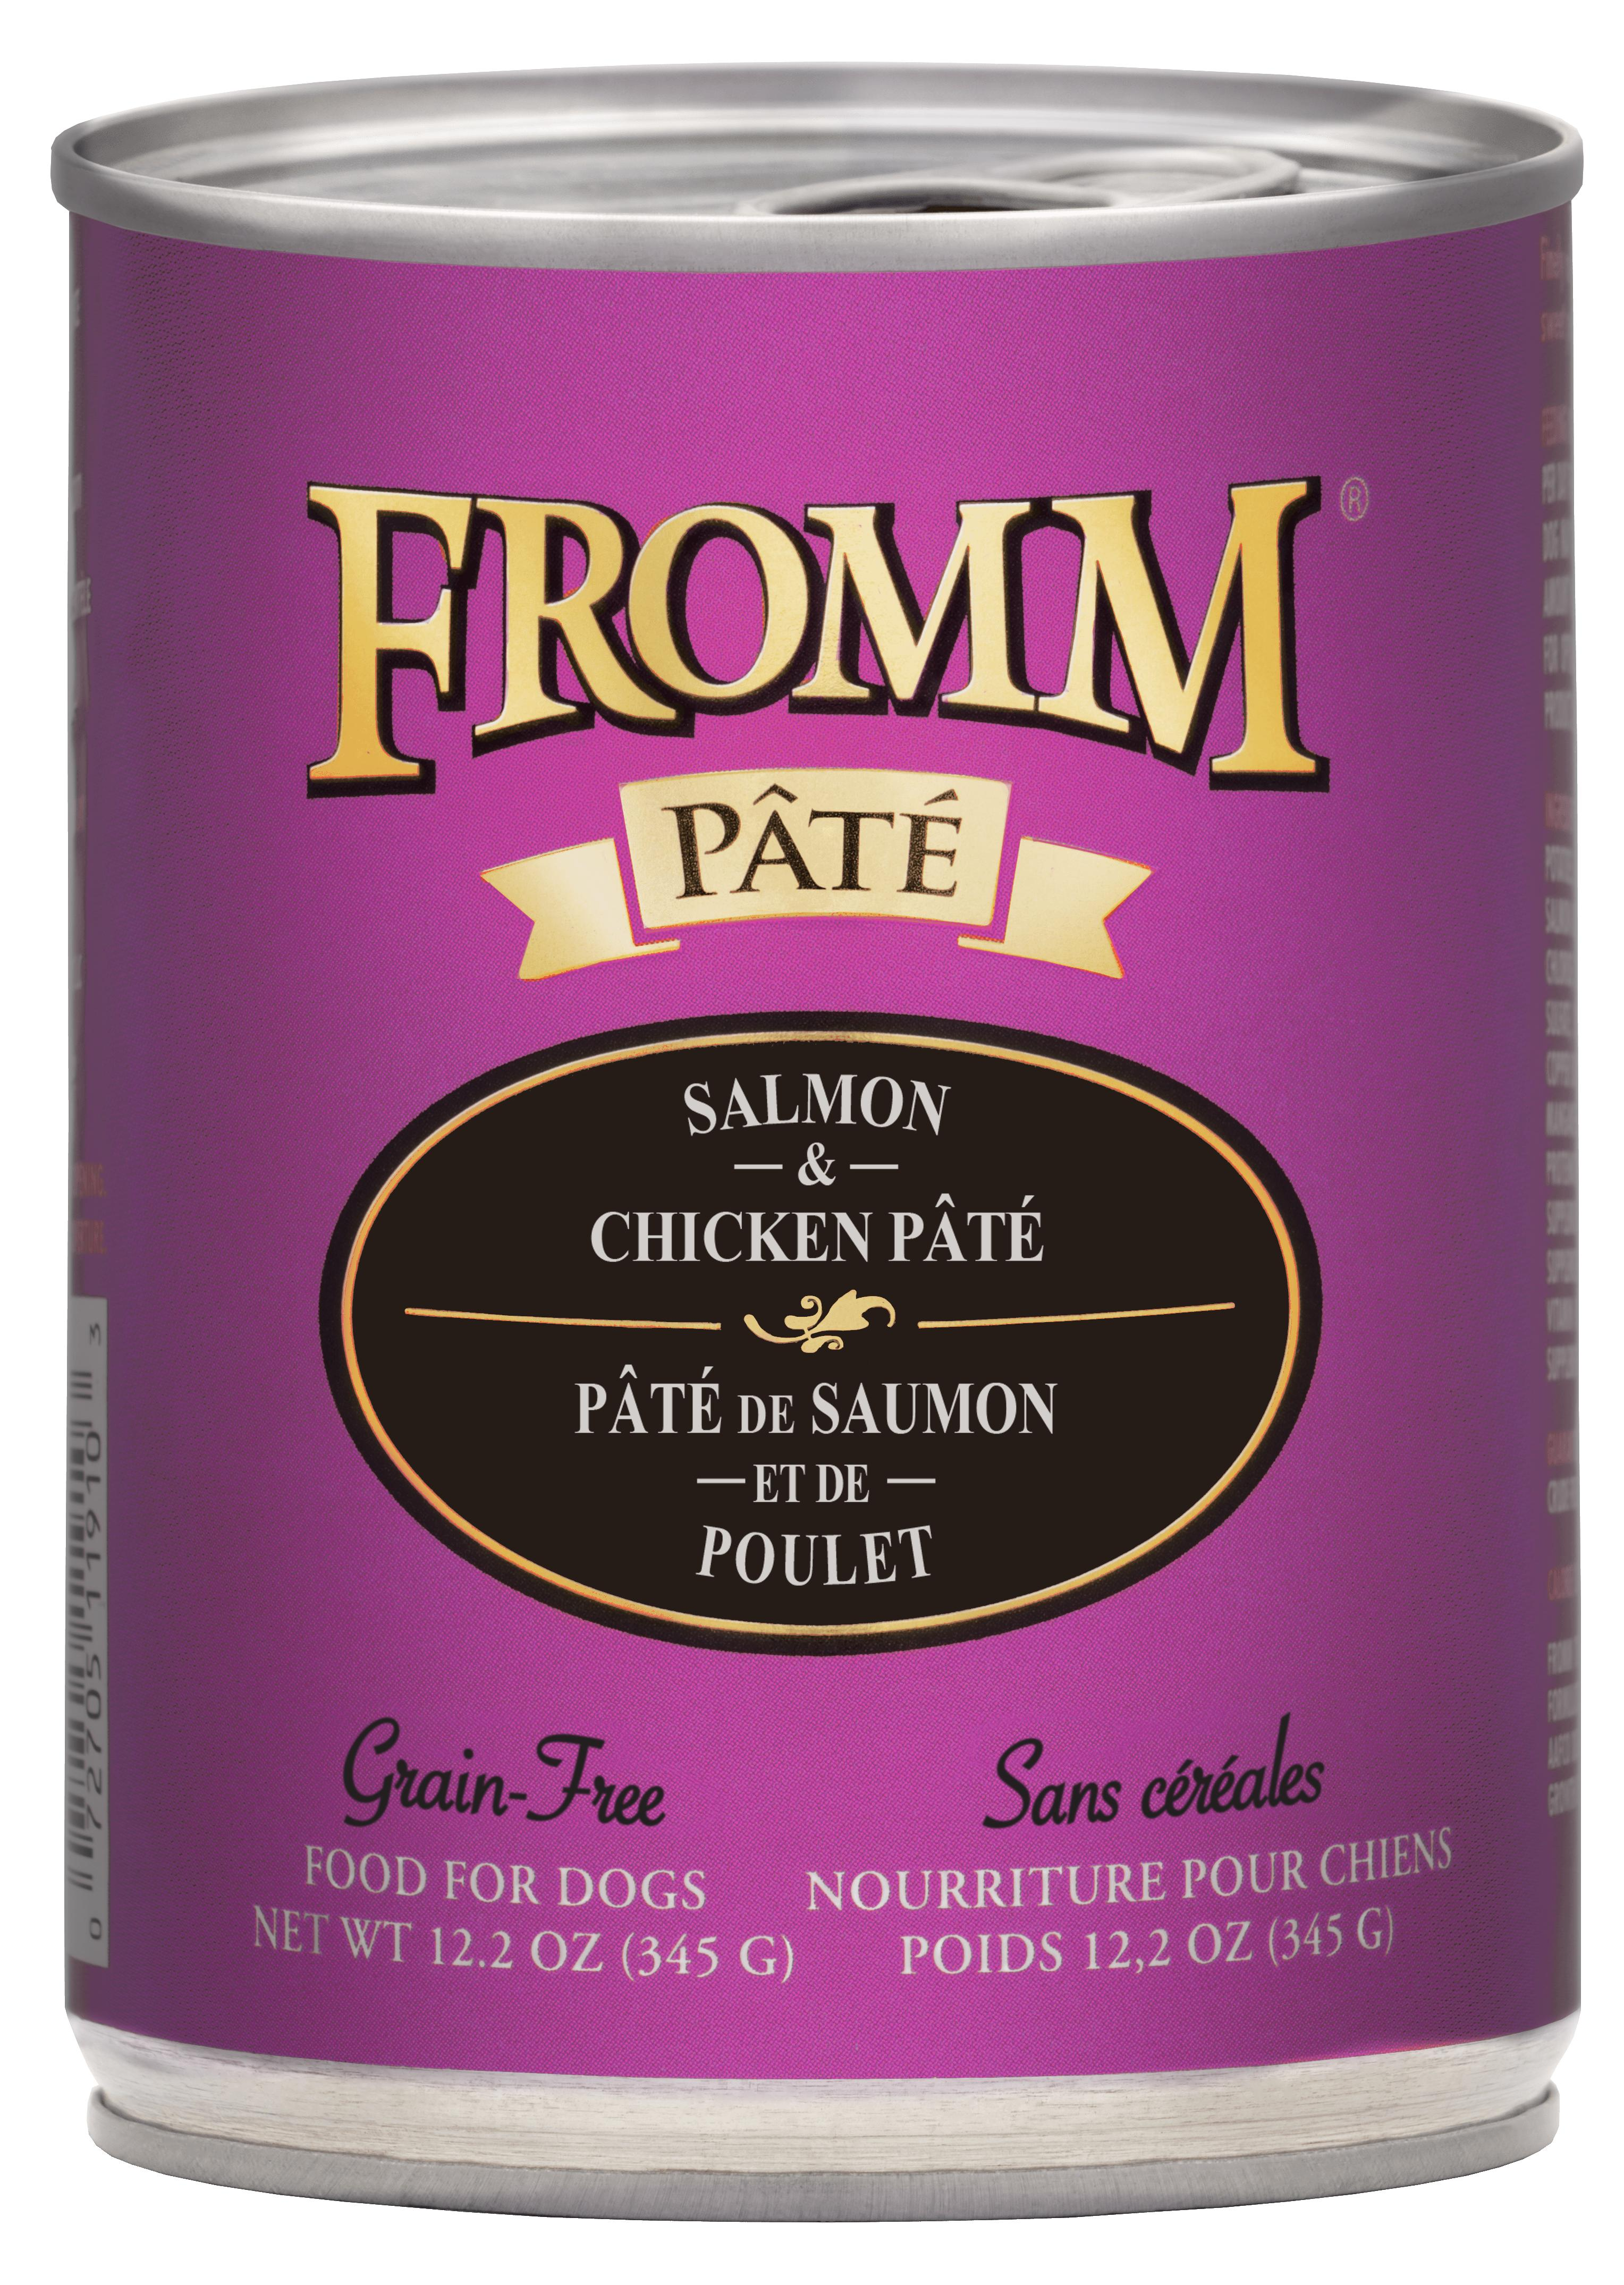 Fromm Salmon & Chicken Pate Canned Dog Food, 12.2-oz